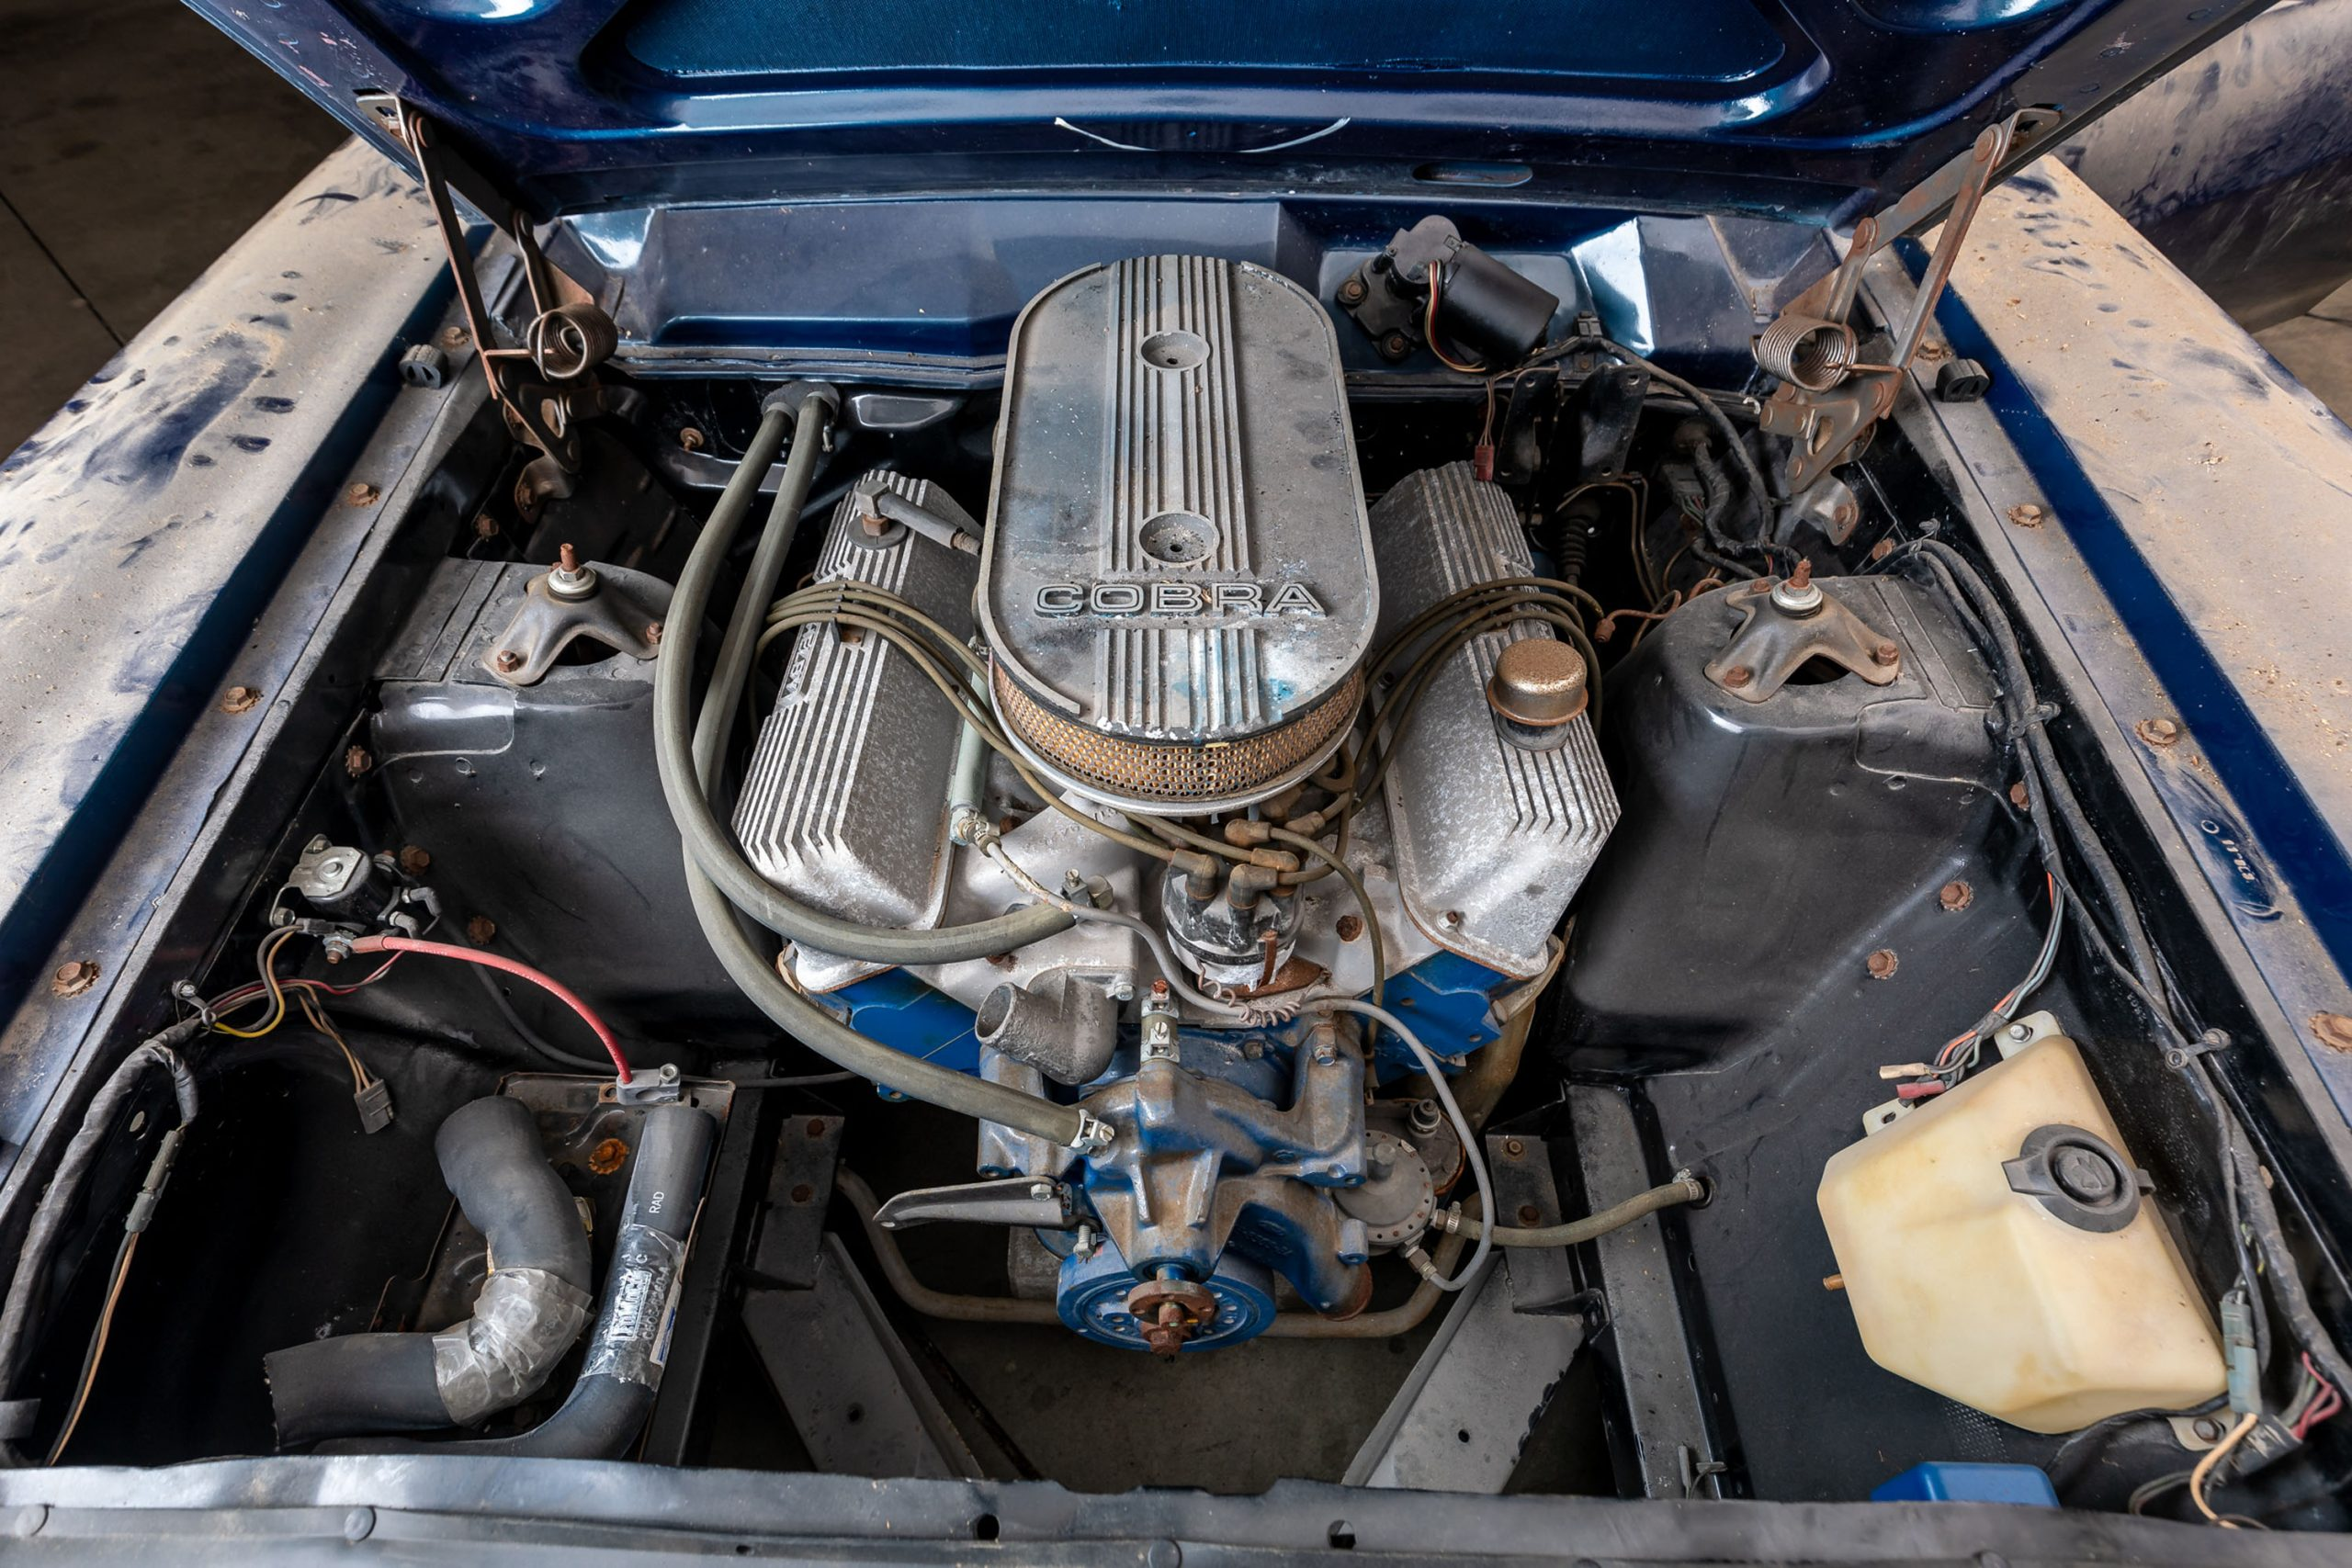 1967 Mercury Comet Cyclone R-Code engine